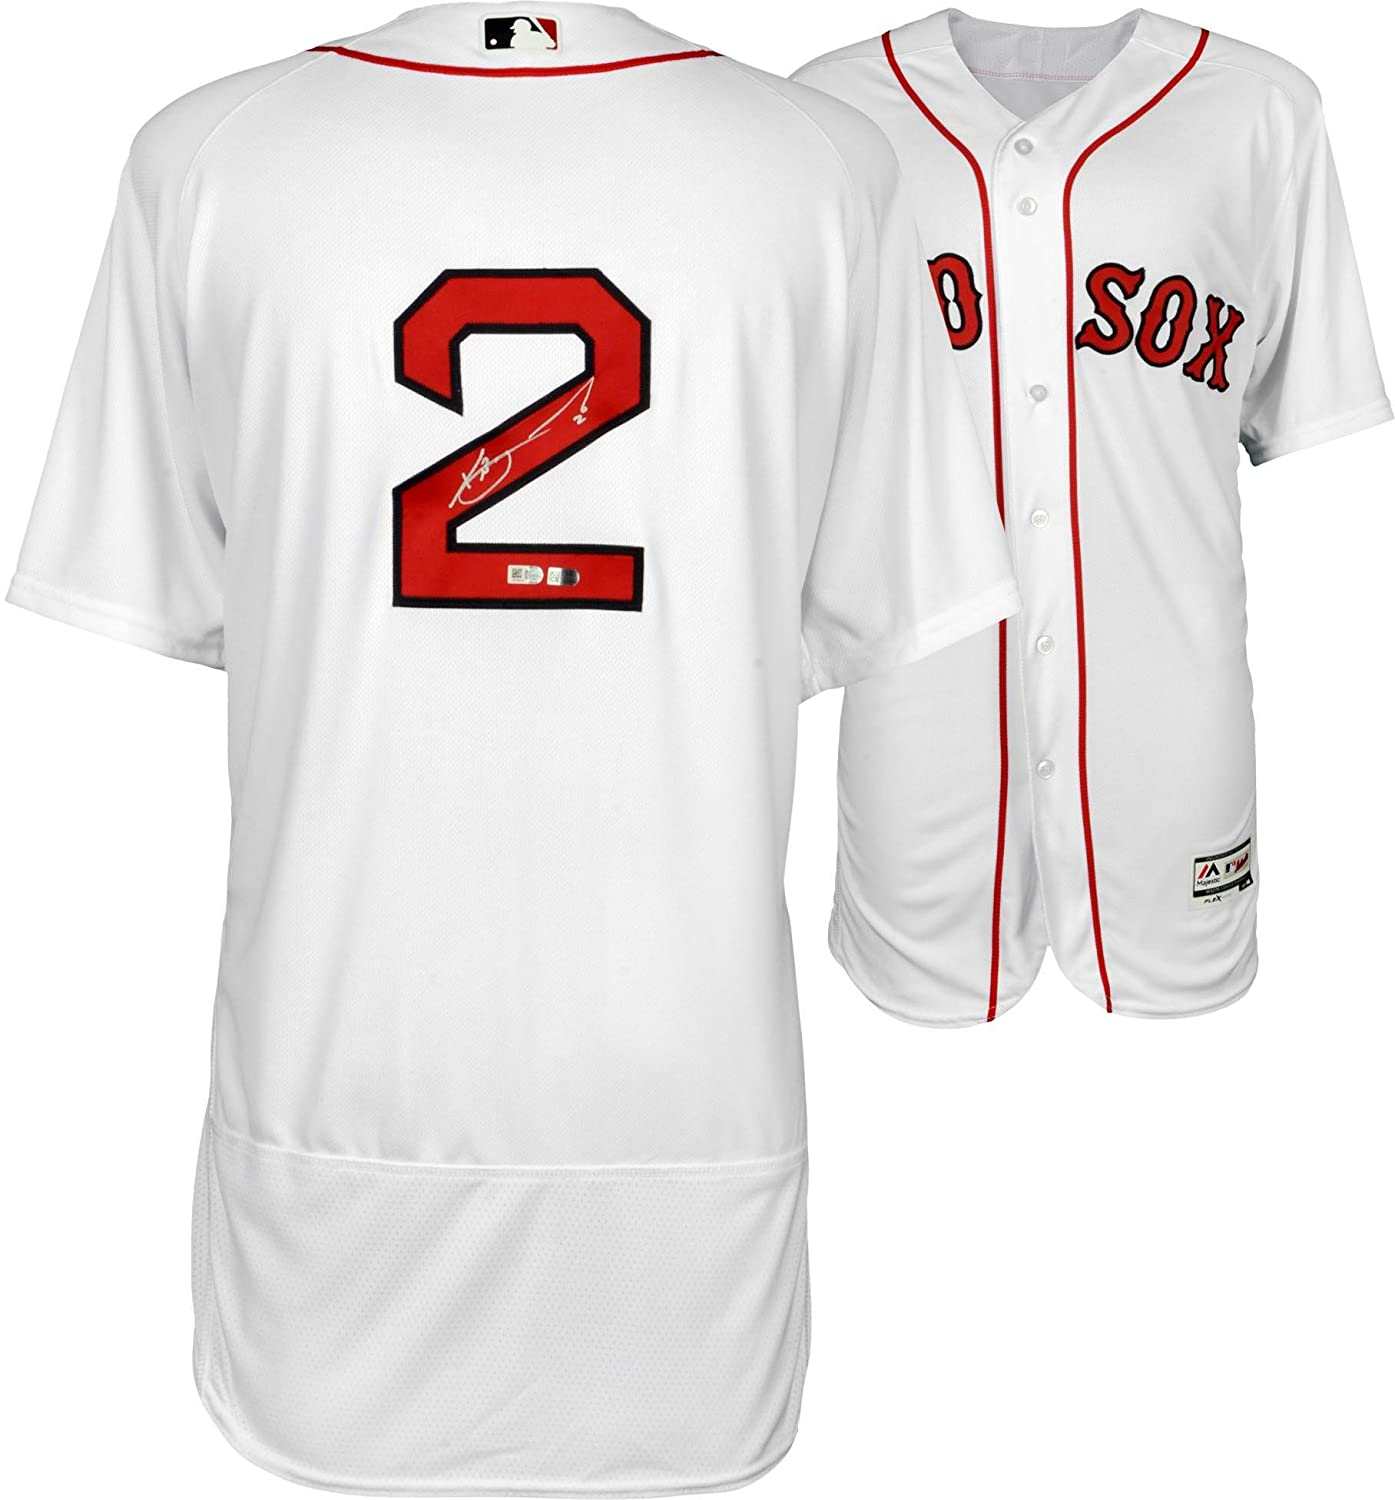 226db390e Xander Bogaerts Boston Red Sox Autographed White Authentic Jersey -  Fanatics Authentic Certified - Autographed MLB Jerseys at Amazon s Sports  Collectibles ...